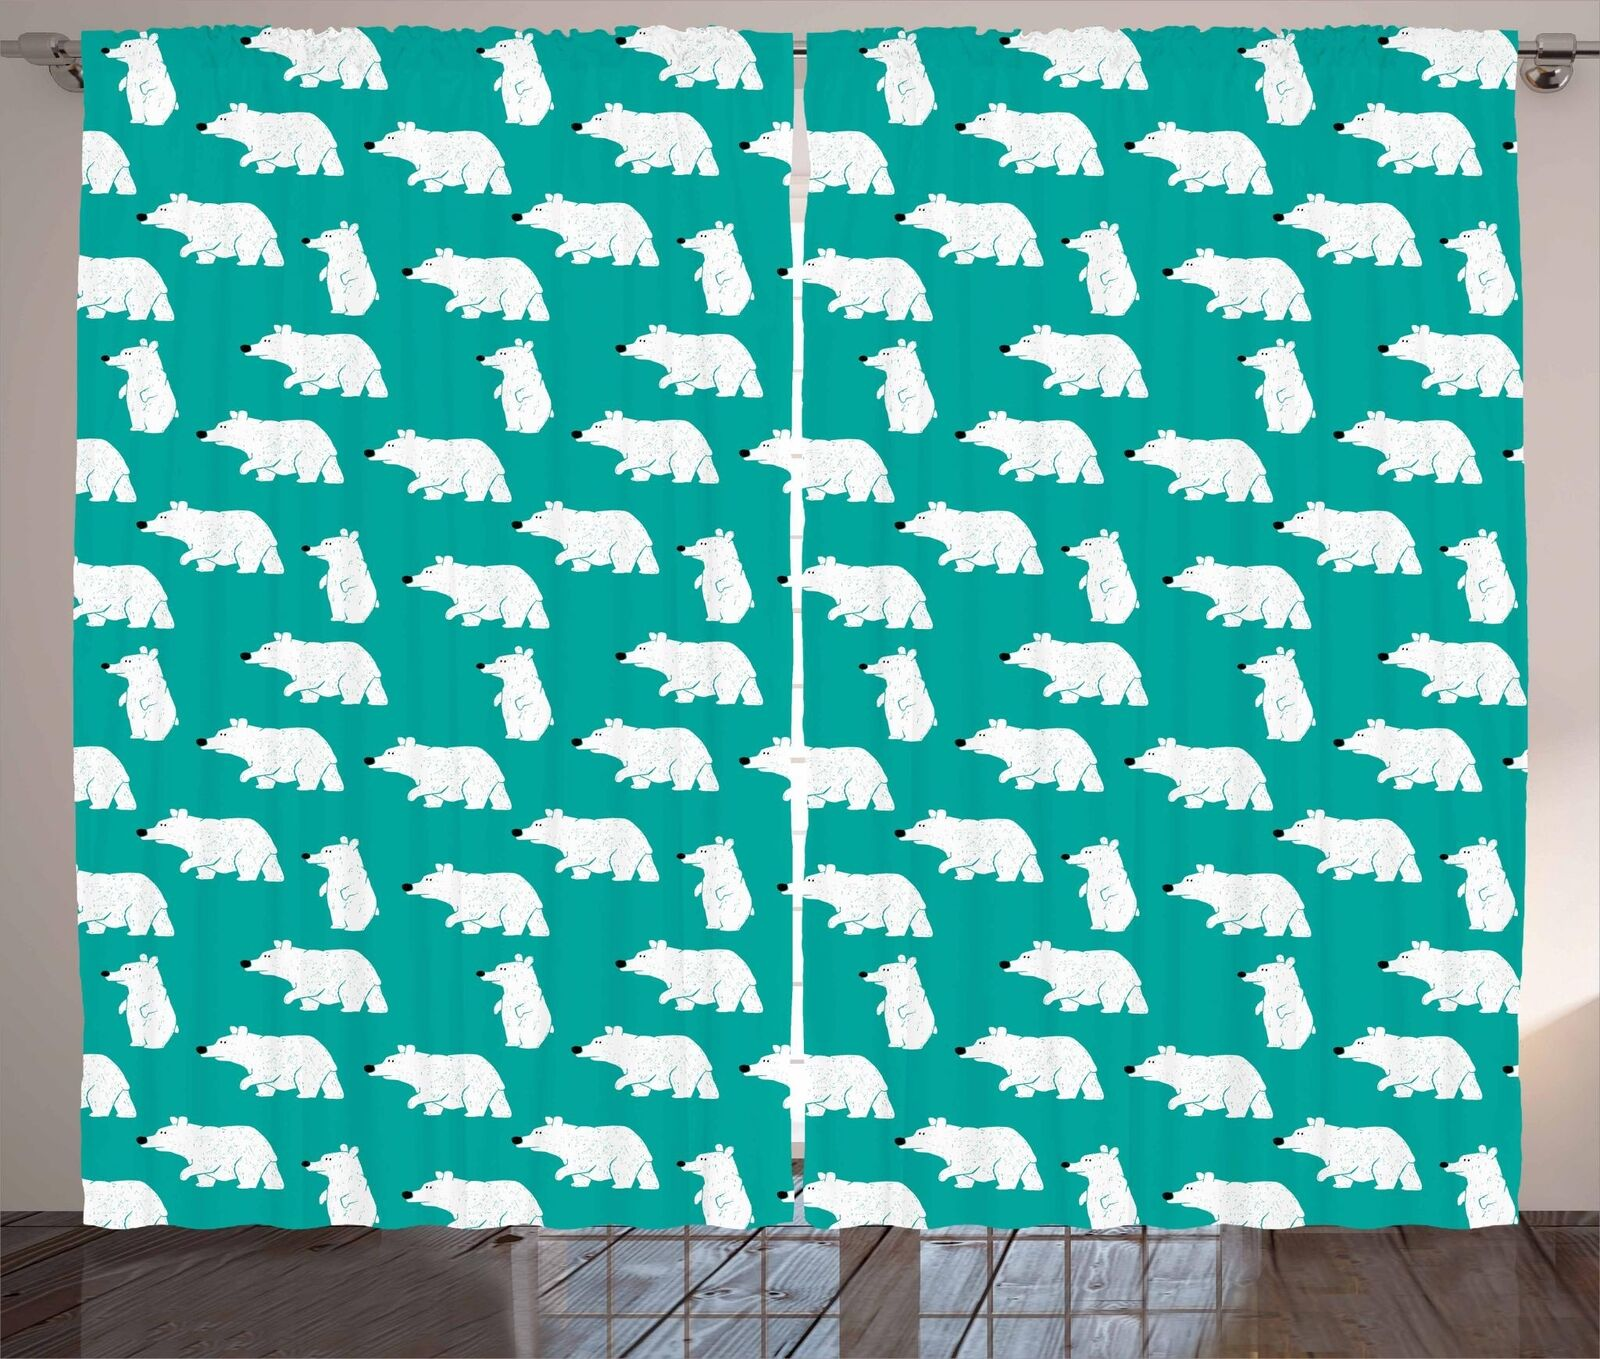 Cartoon Woodland Curtains 2 Panel Set for Decor 5 Größes Available Window Drapes